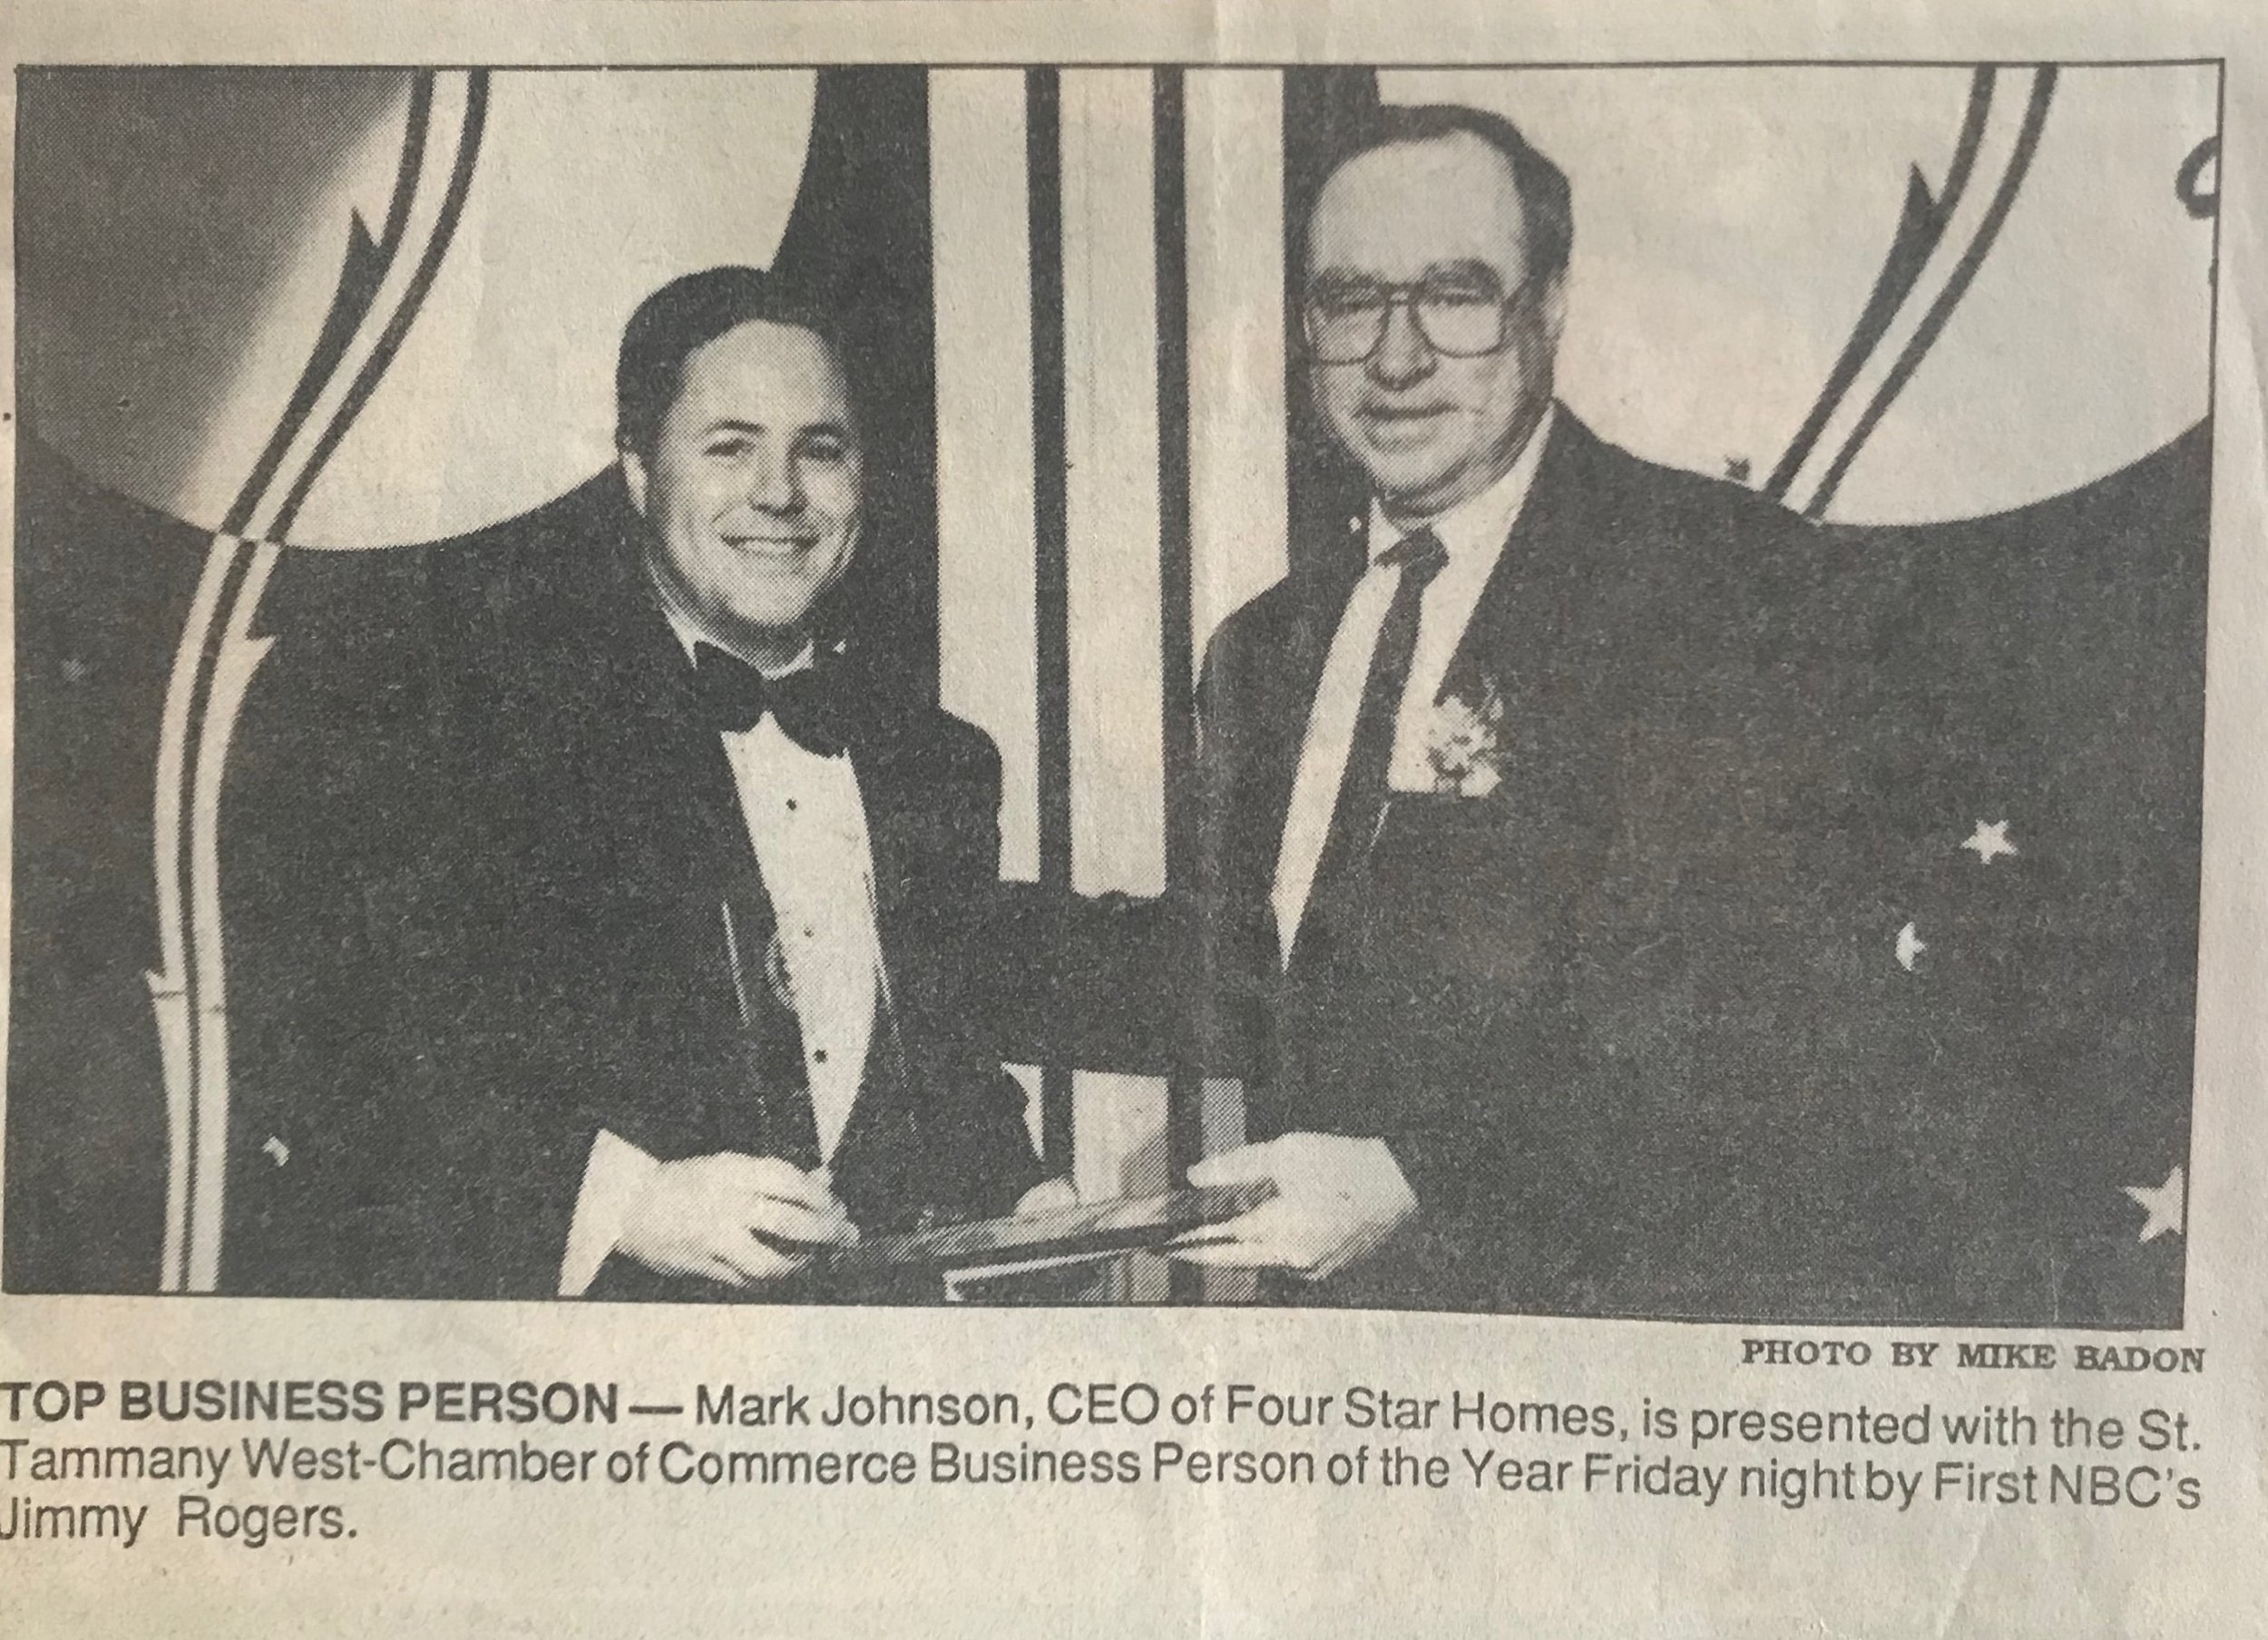 Mark-Johnson-St-Tammany-Parish-West-Chamber-Business-Person-of-the-Year-1992.jpg